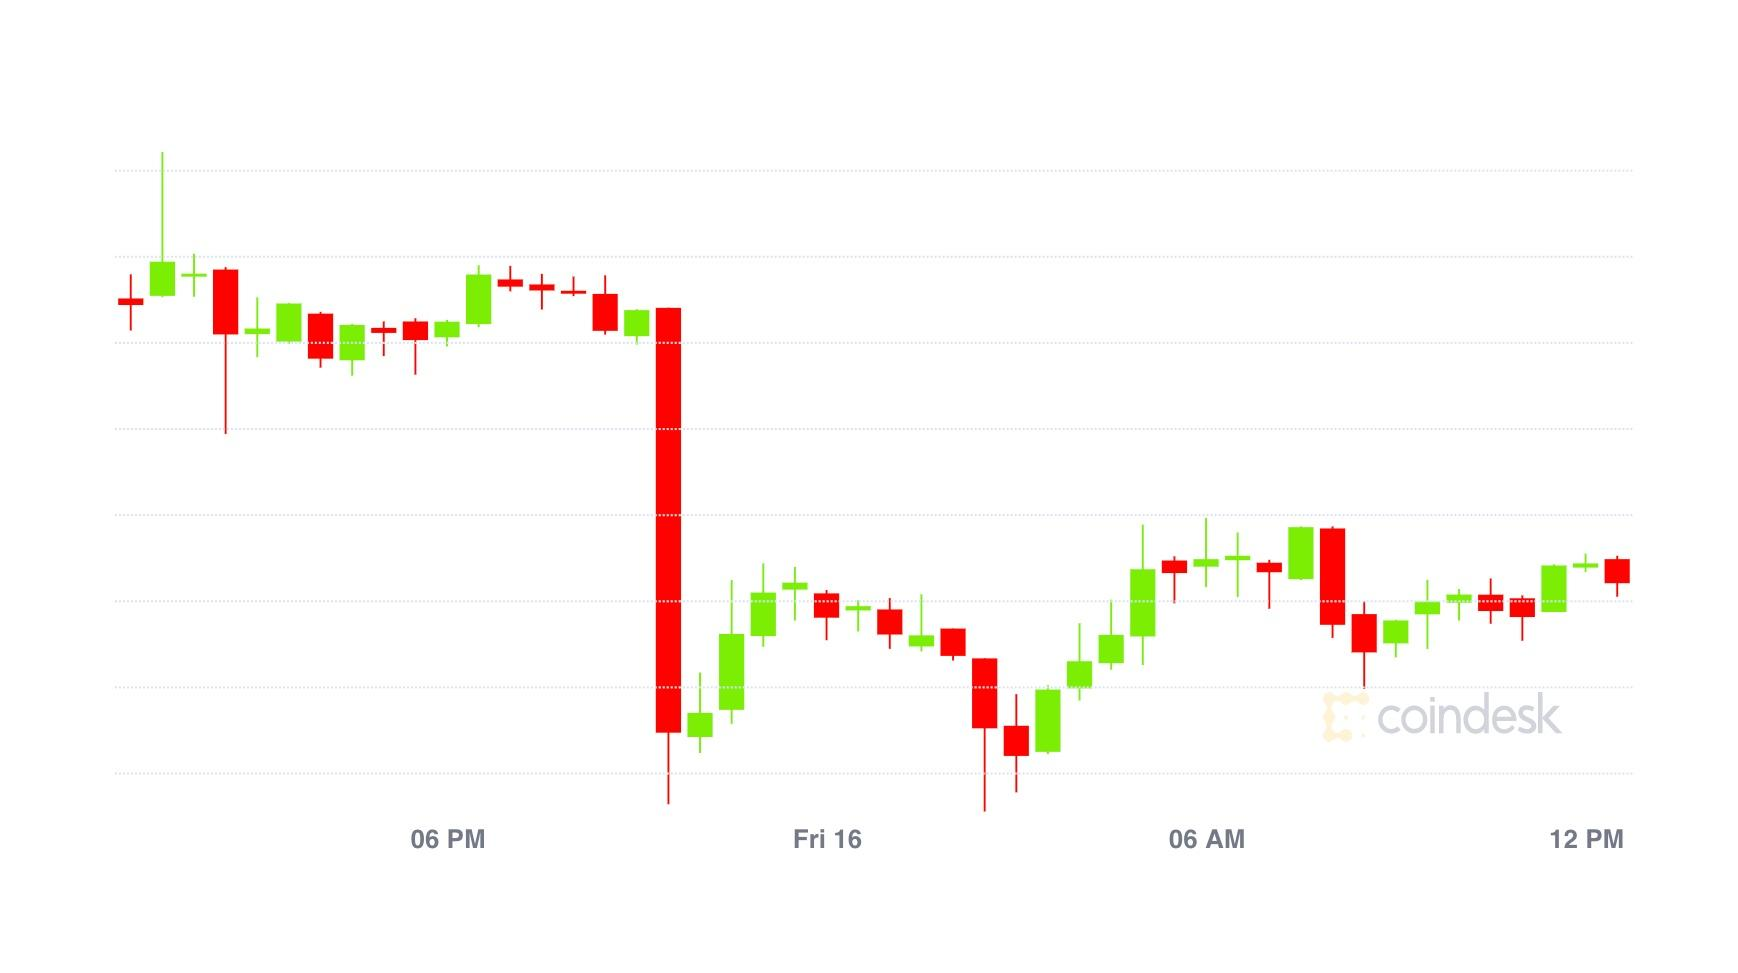 Market Wrap: Bitcoin Has Light Response to OKEx While Ether Options Traders Make Beacon Bets